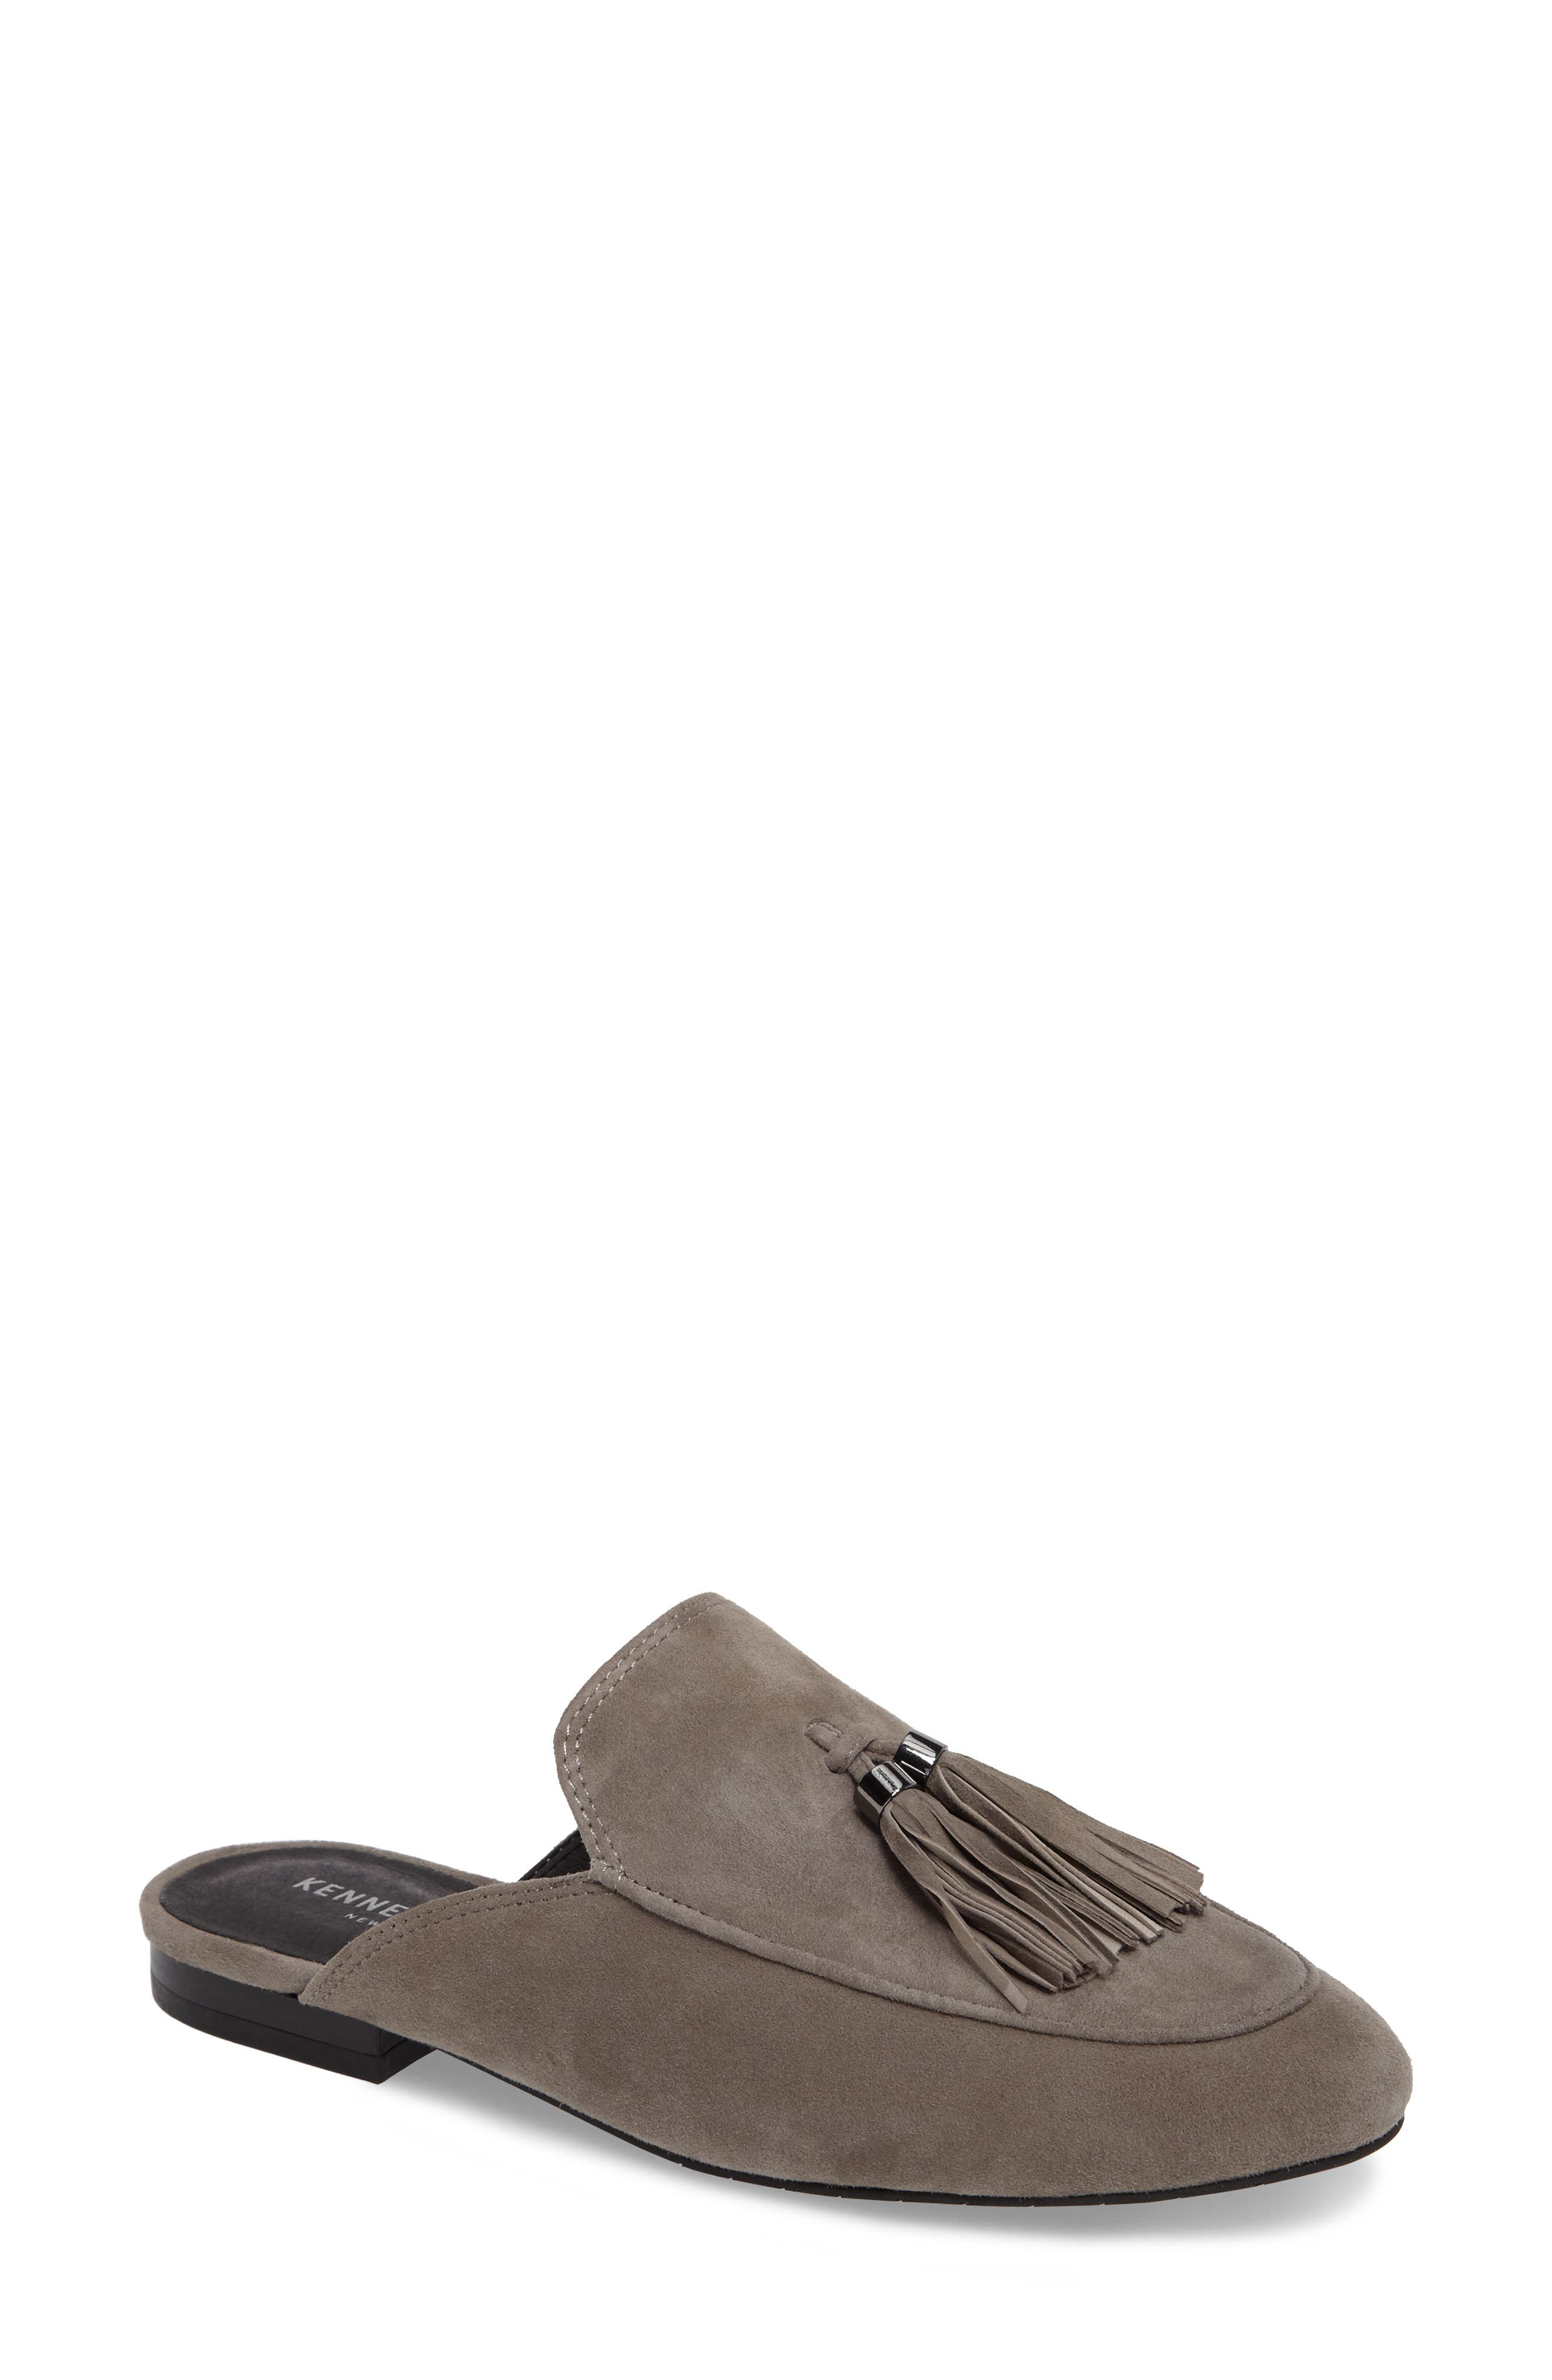 Whinnie Loafer Mule,                         Main,                         color, 090